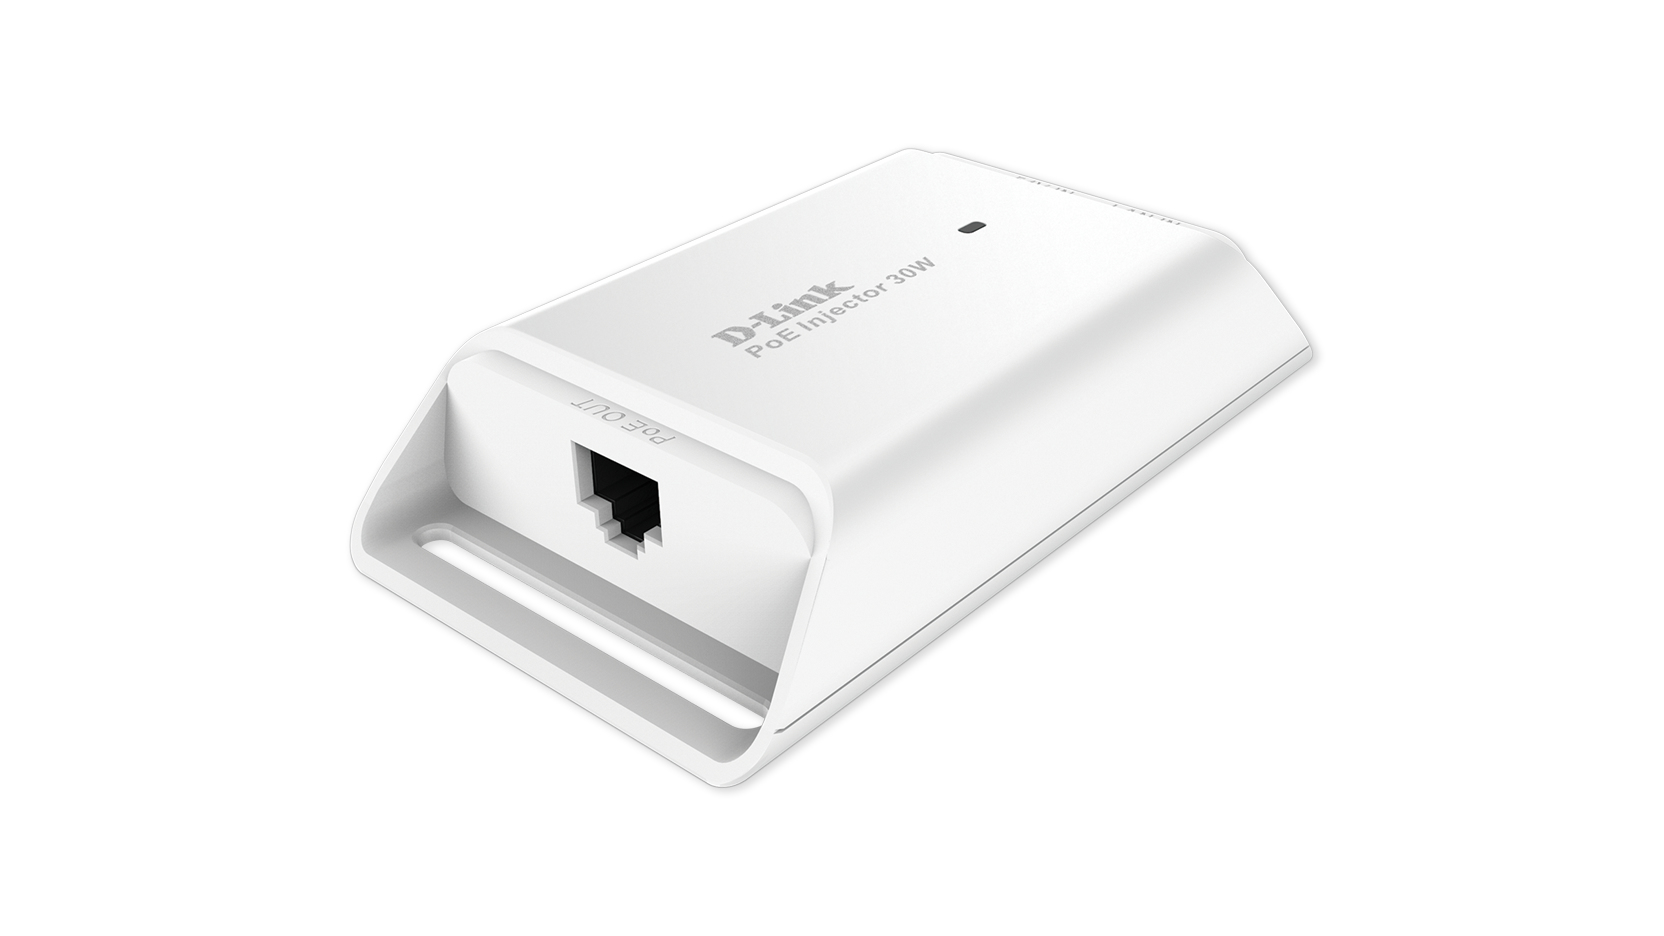 D-Link DPE-301GI Fast Ethernet,Gigabit Ethernet PoE adapter